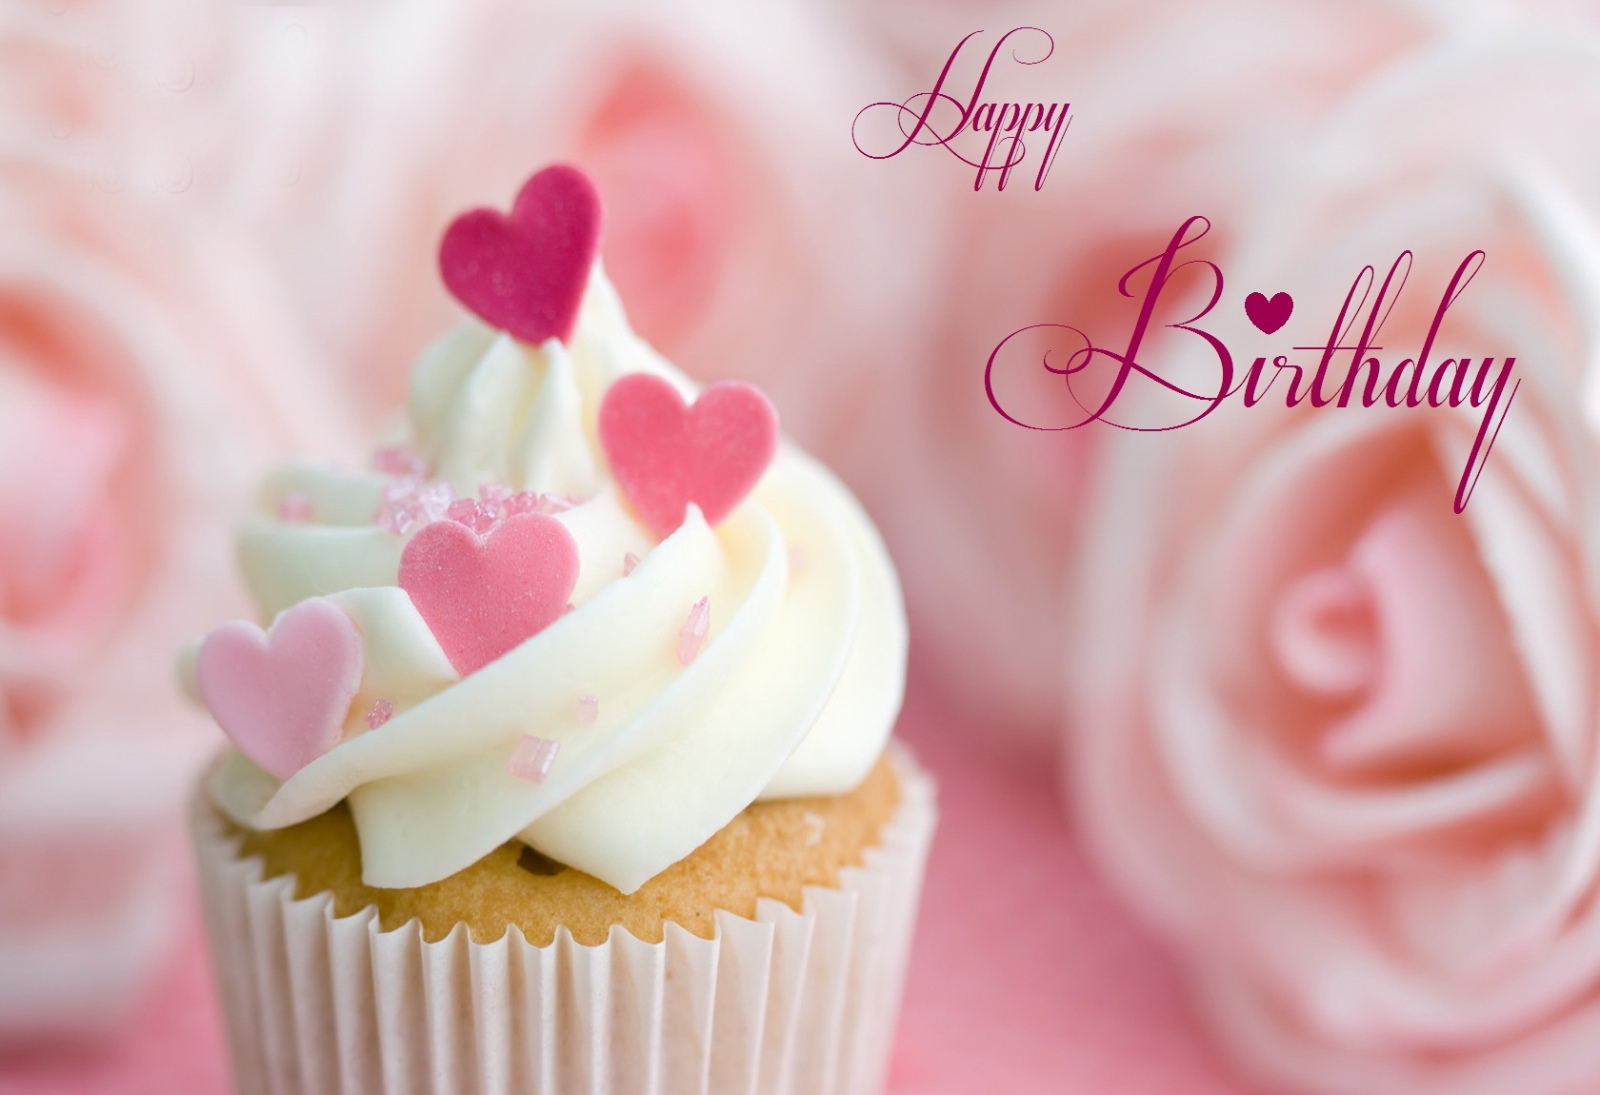 birthday wishes images hd free download ; WDF_2155550